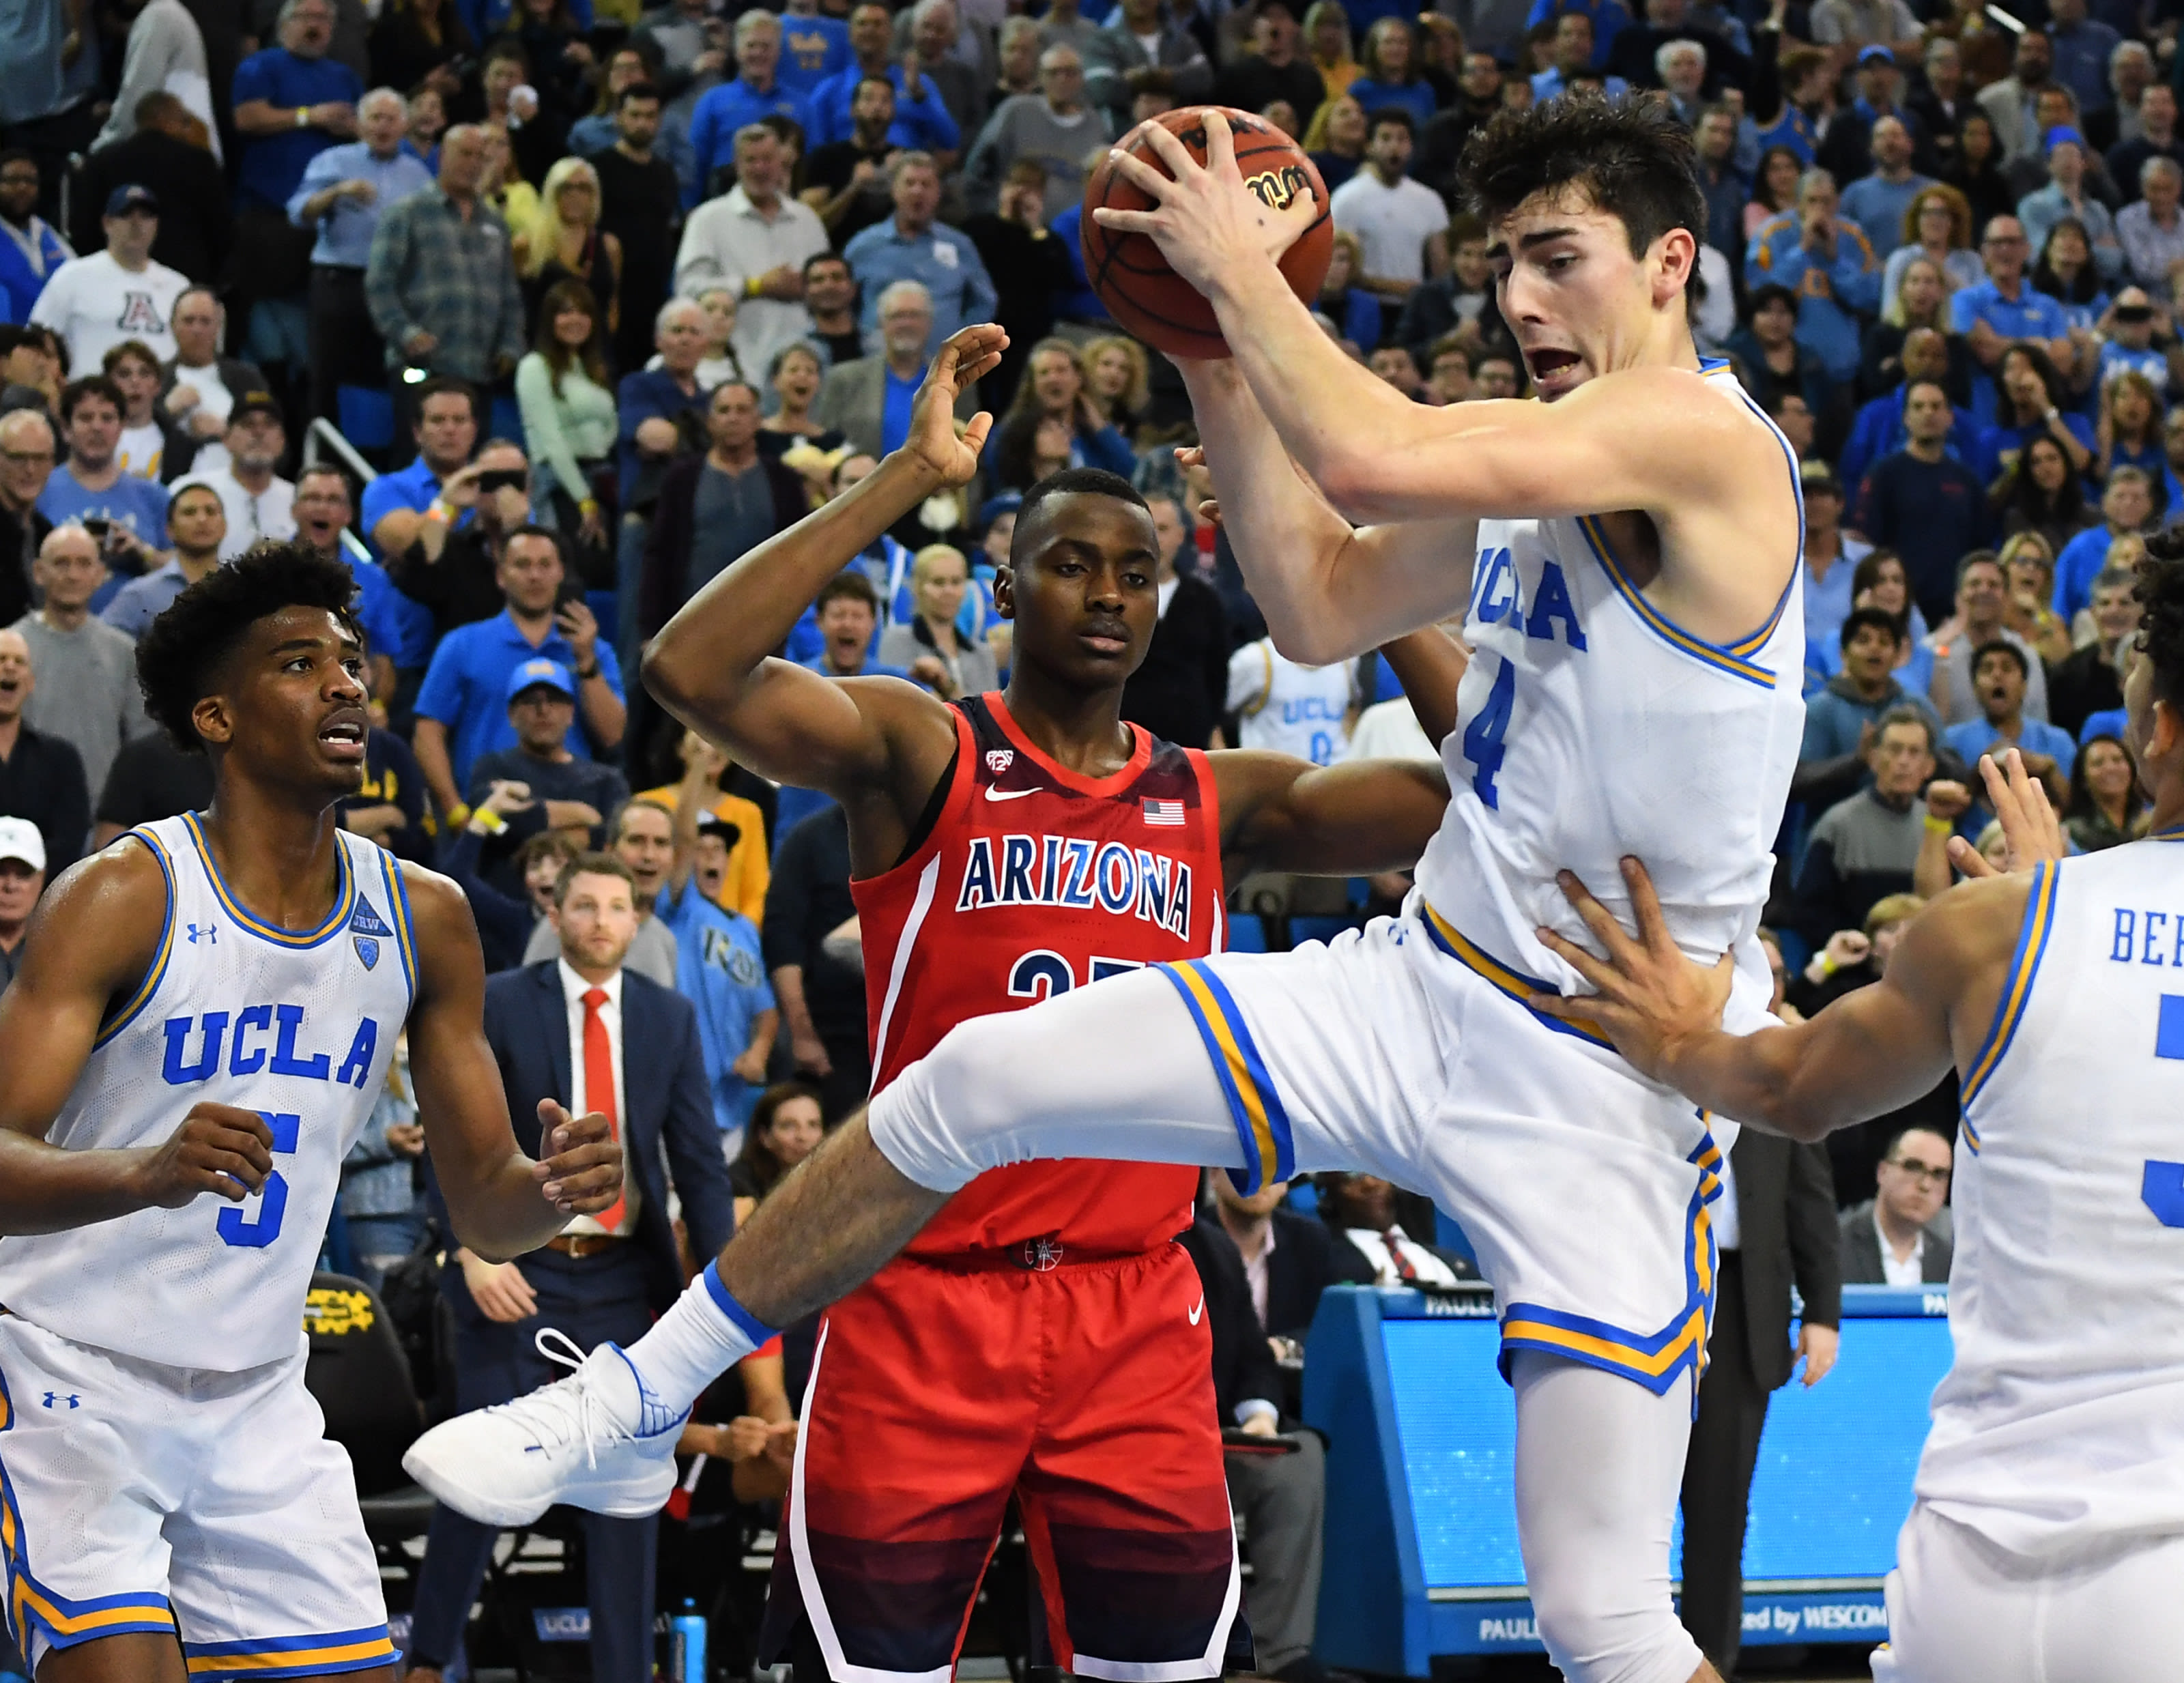 Jaime Jaquez Jr. #4 of the UCLA Bruins grabs a rebound in front of Christian Koloko #35 of the Arizona Wildcats in the second half of the game at Pauley Pavilion on February 29,